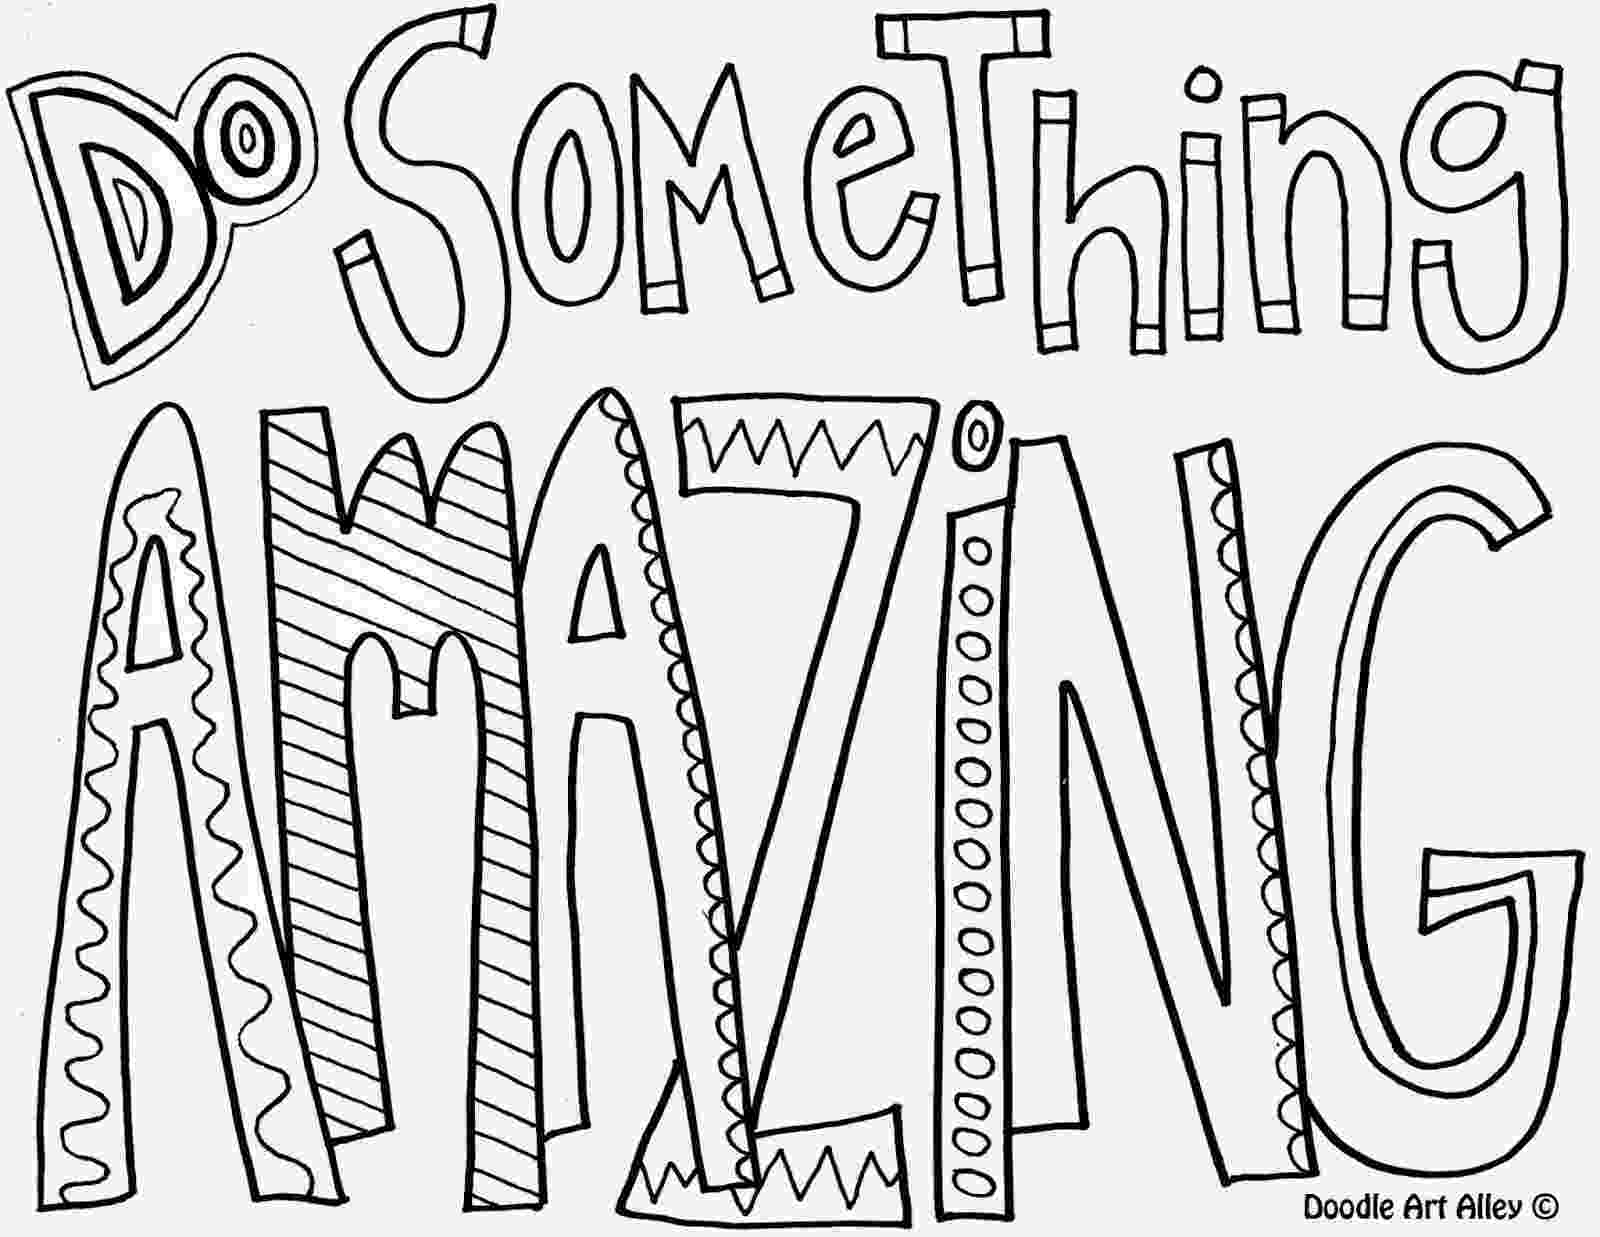 inspirational quotes colouring pages inspirational quotes coloring pages for adults quotes colouring inspirational pages